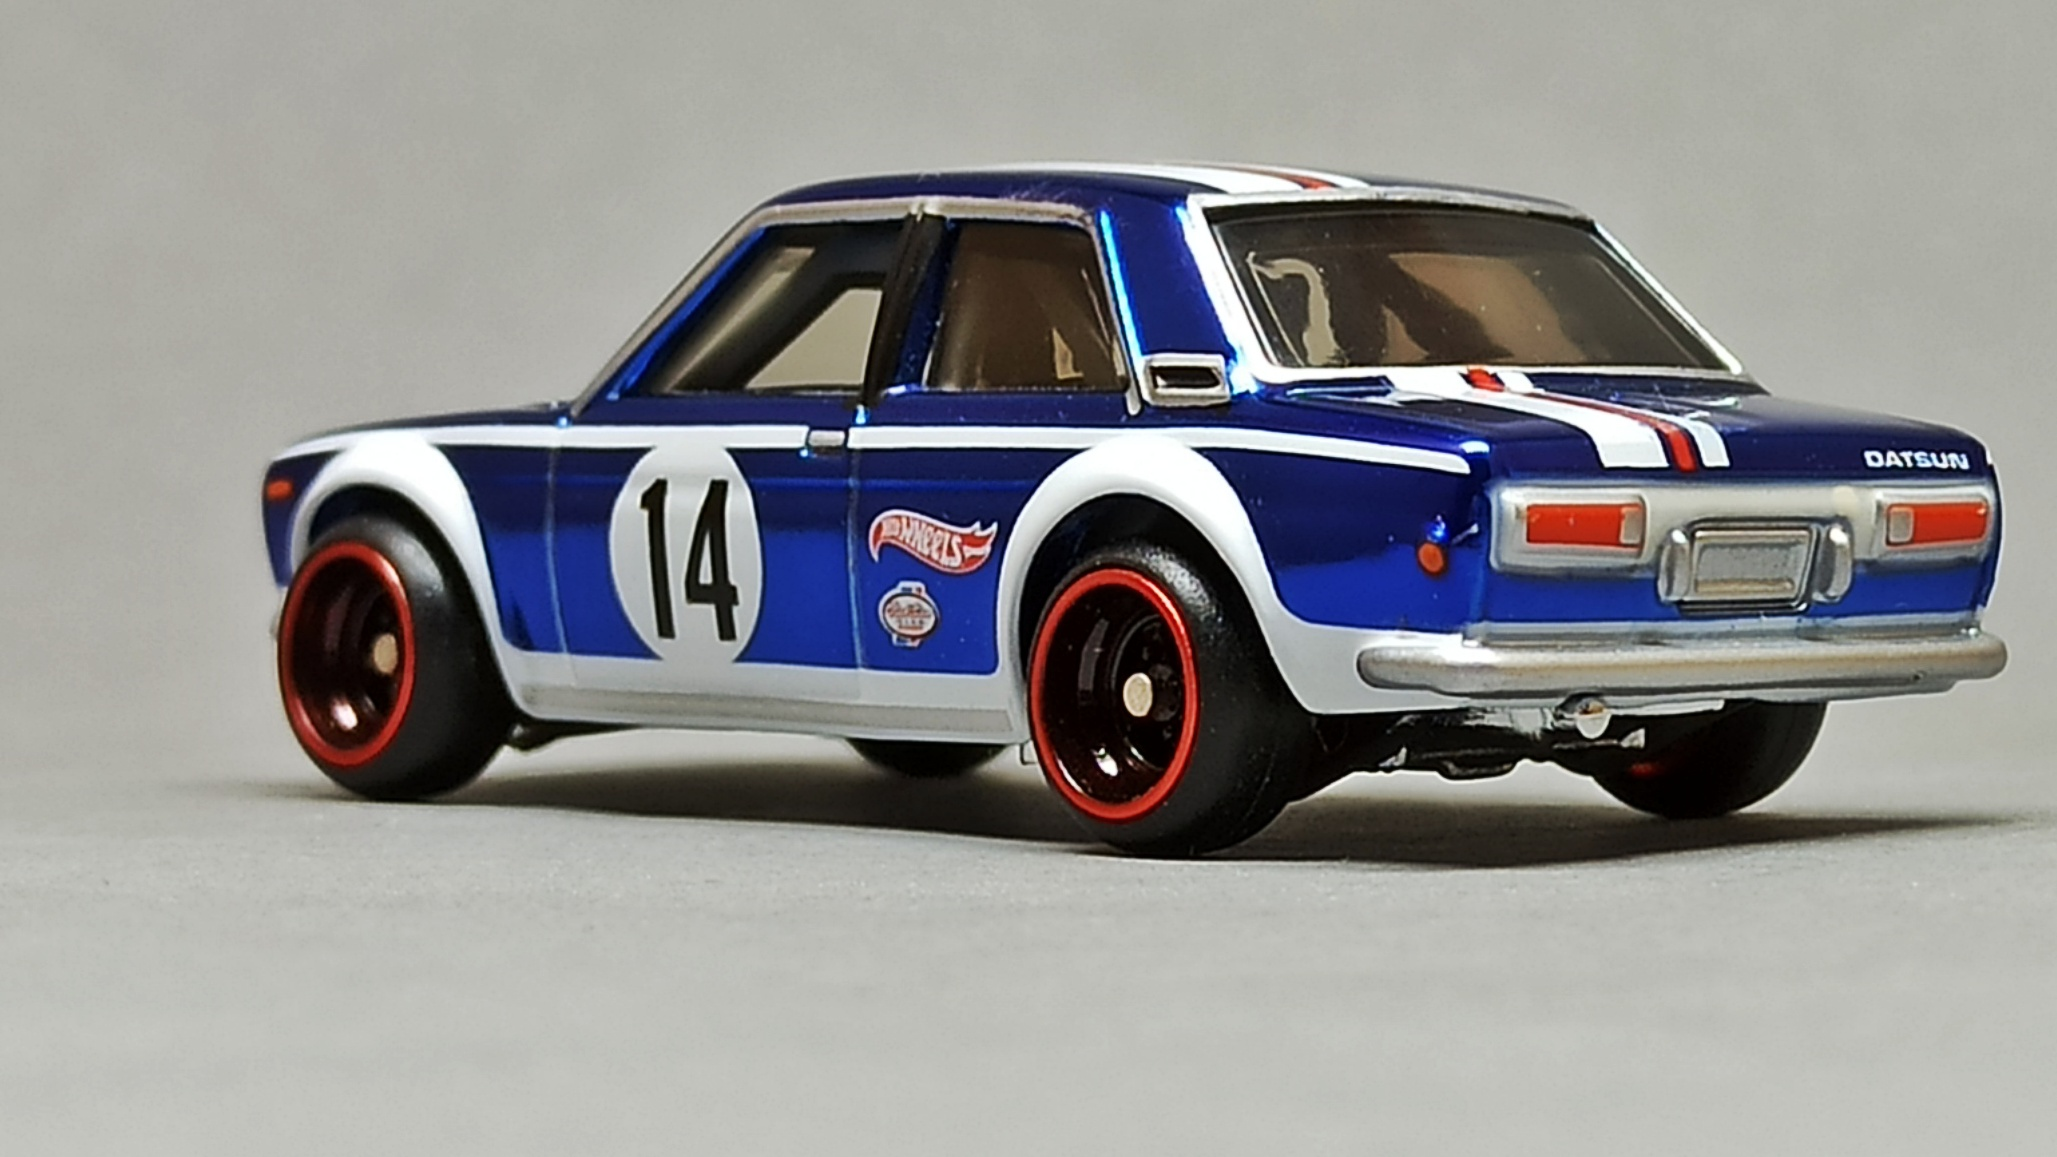 Hot Wheels Datsun Bluebird 510 (DTH31) 2016 RLC HWC Series 14 Real Riders (3/4) (1 of 7.000) spectraflame blue side angle